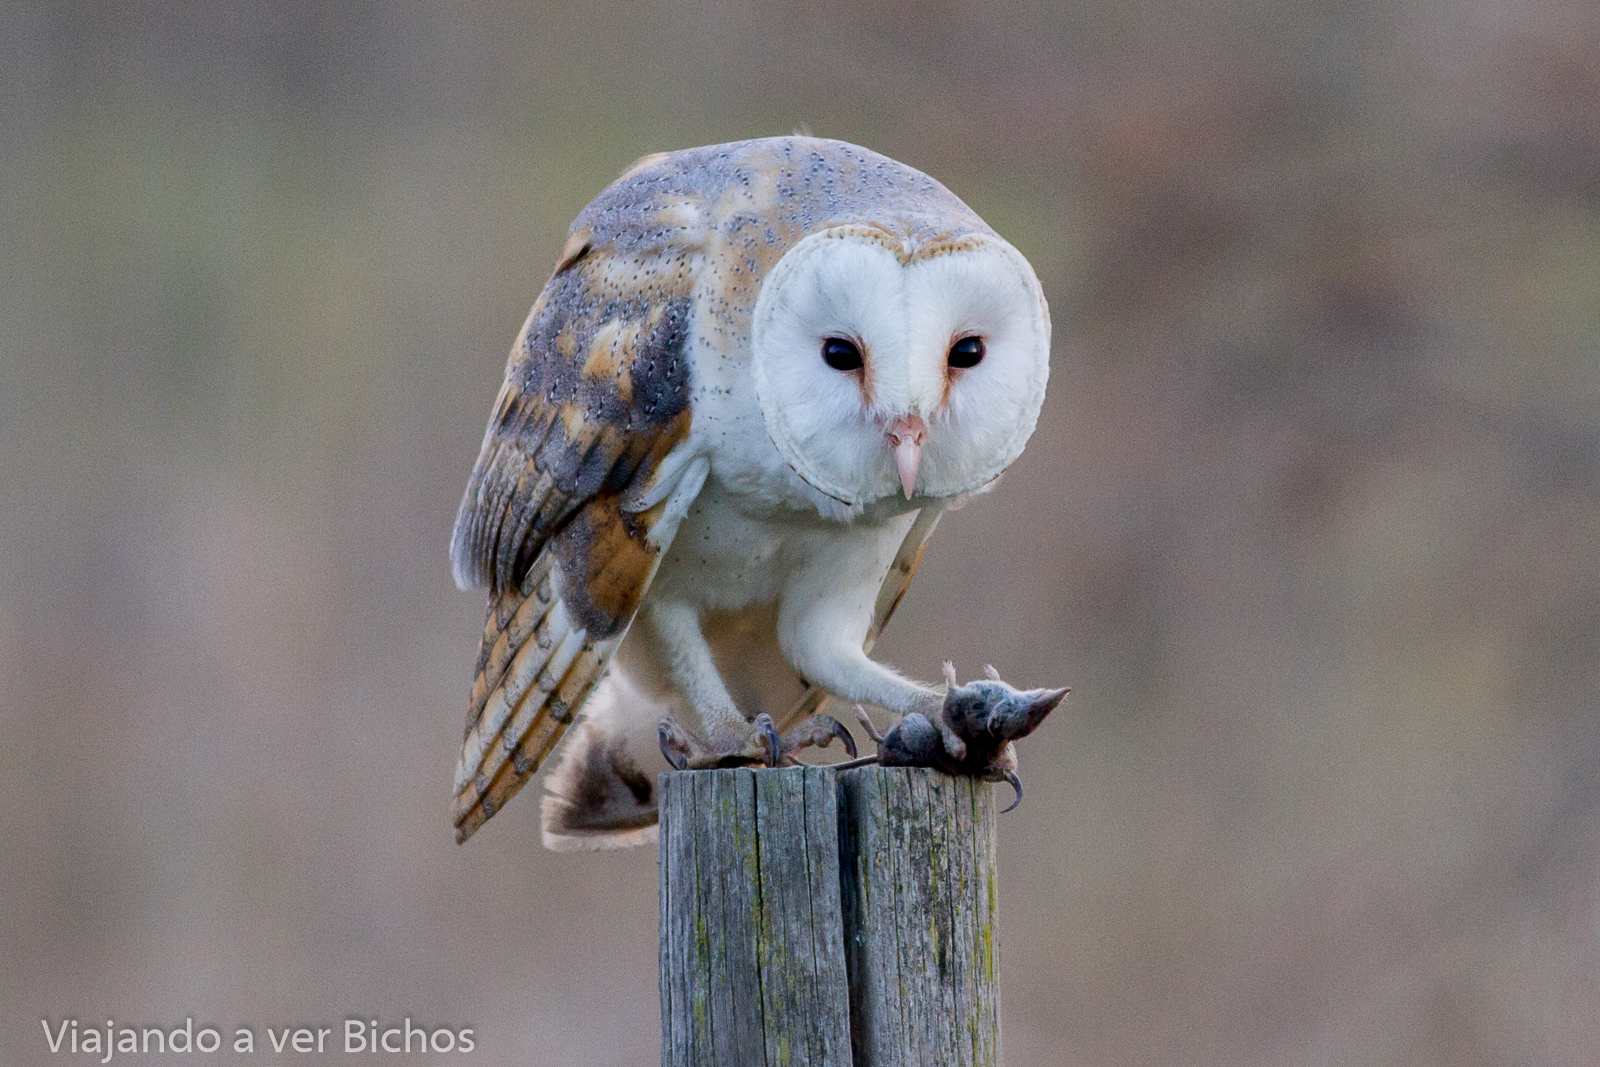 Discover 12 fascinating facts about the beautiful barn owl 1 The barn owl was voted Britains favourite farmland bird by the public in an RSPB poll in